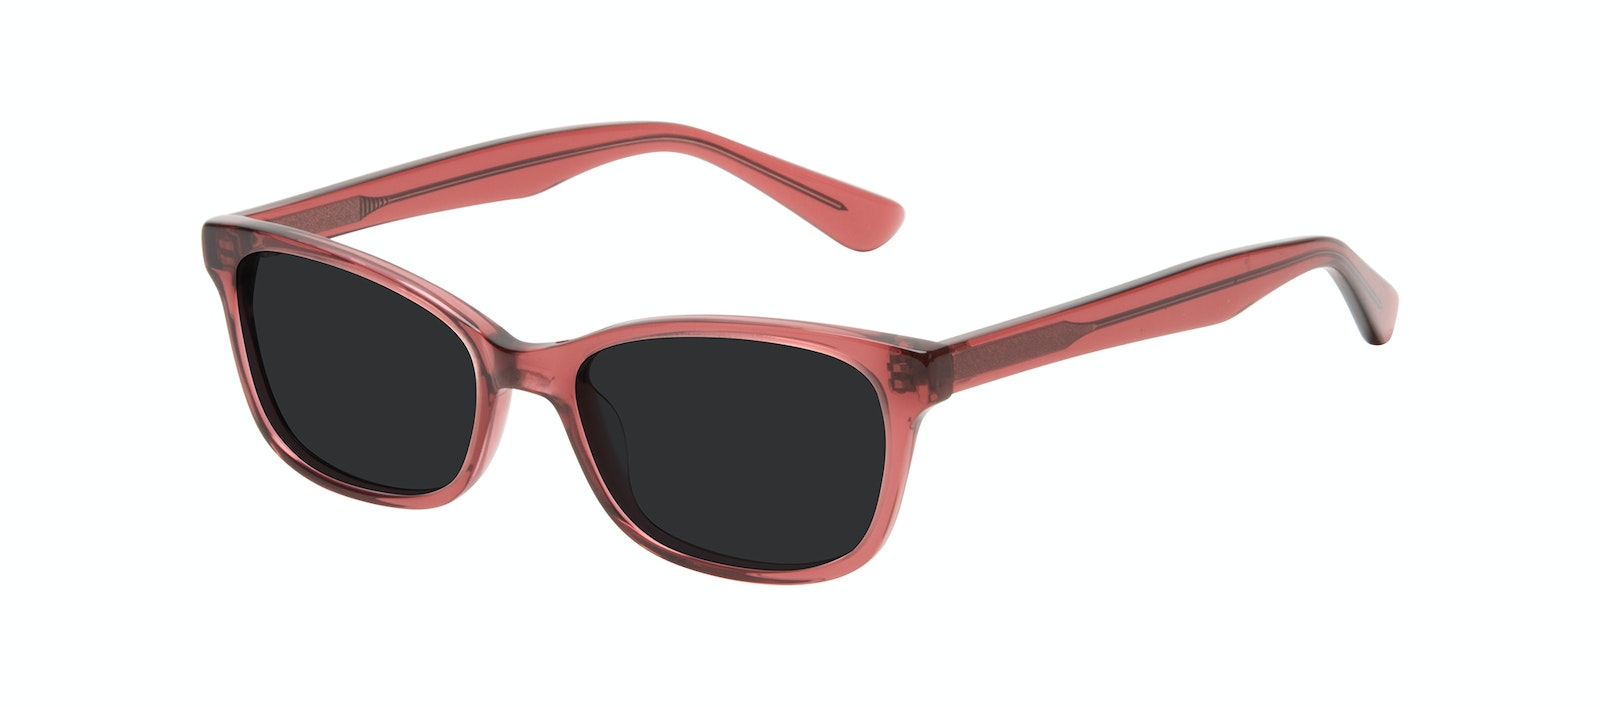 Affordable Fashion Glasses Cat Eye Rectangle Square Sunglasses Women Comet Cherry Tilt